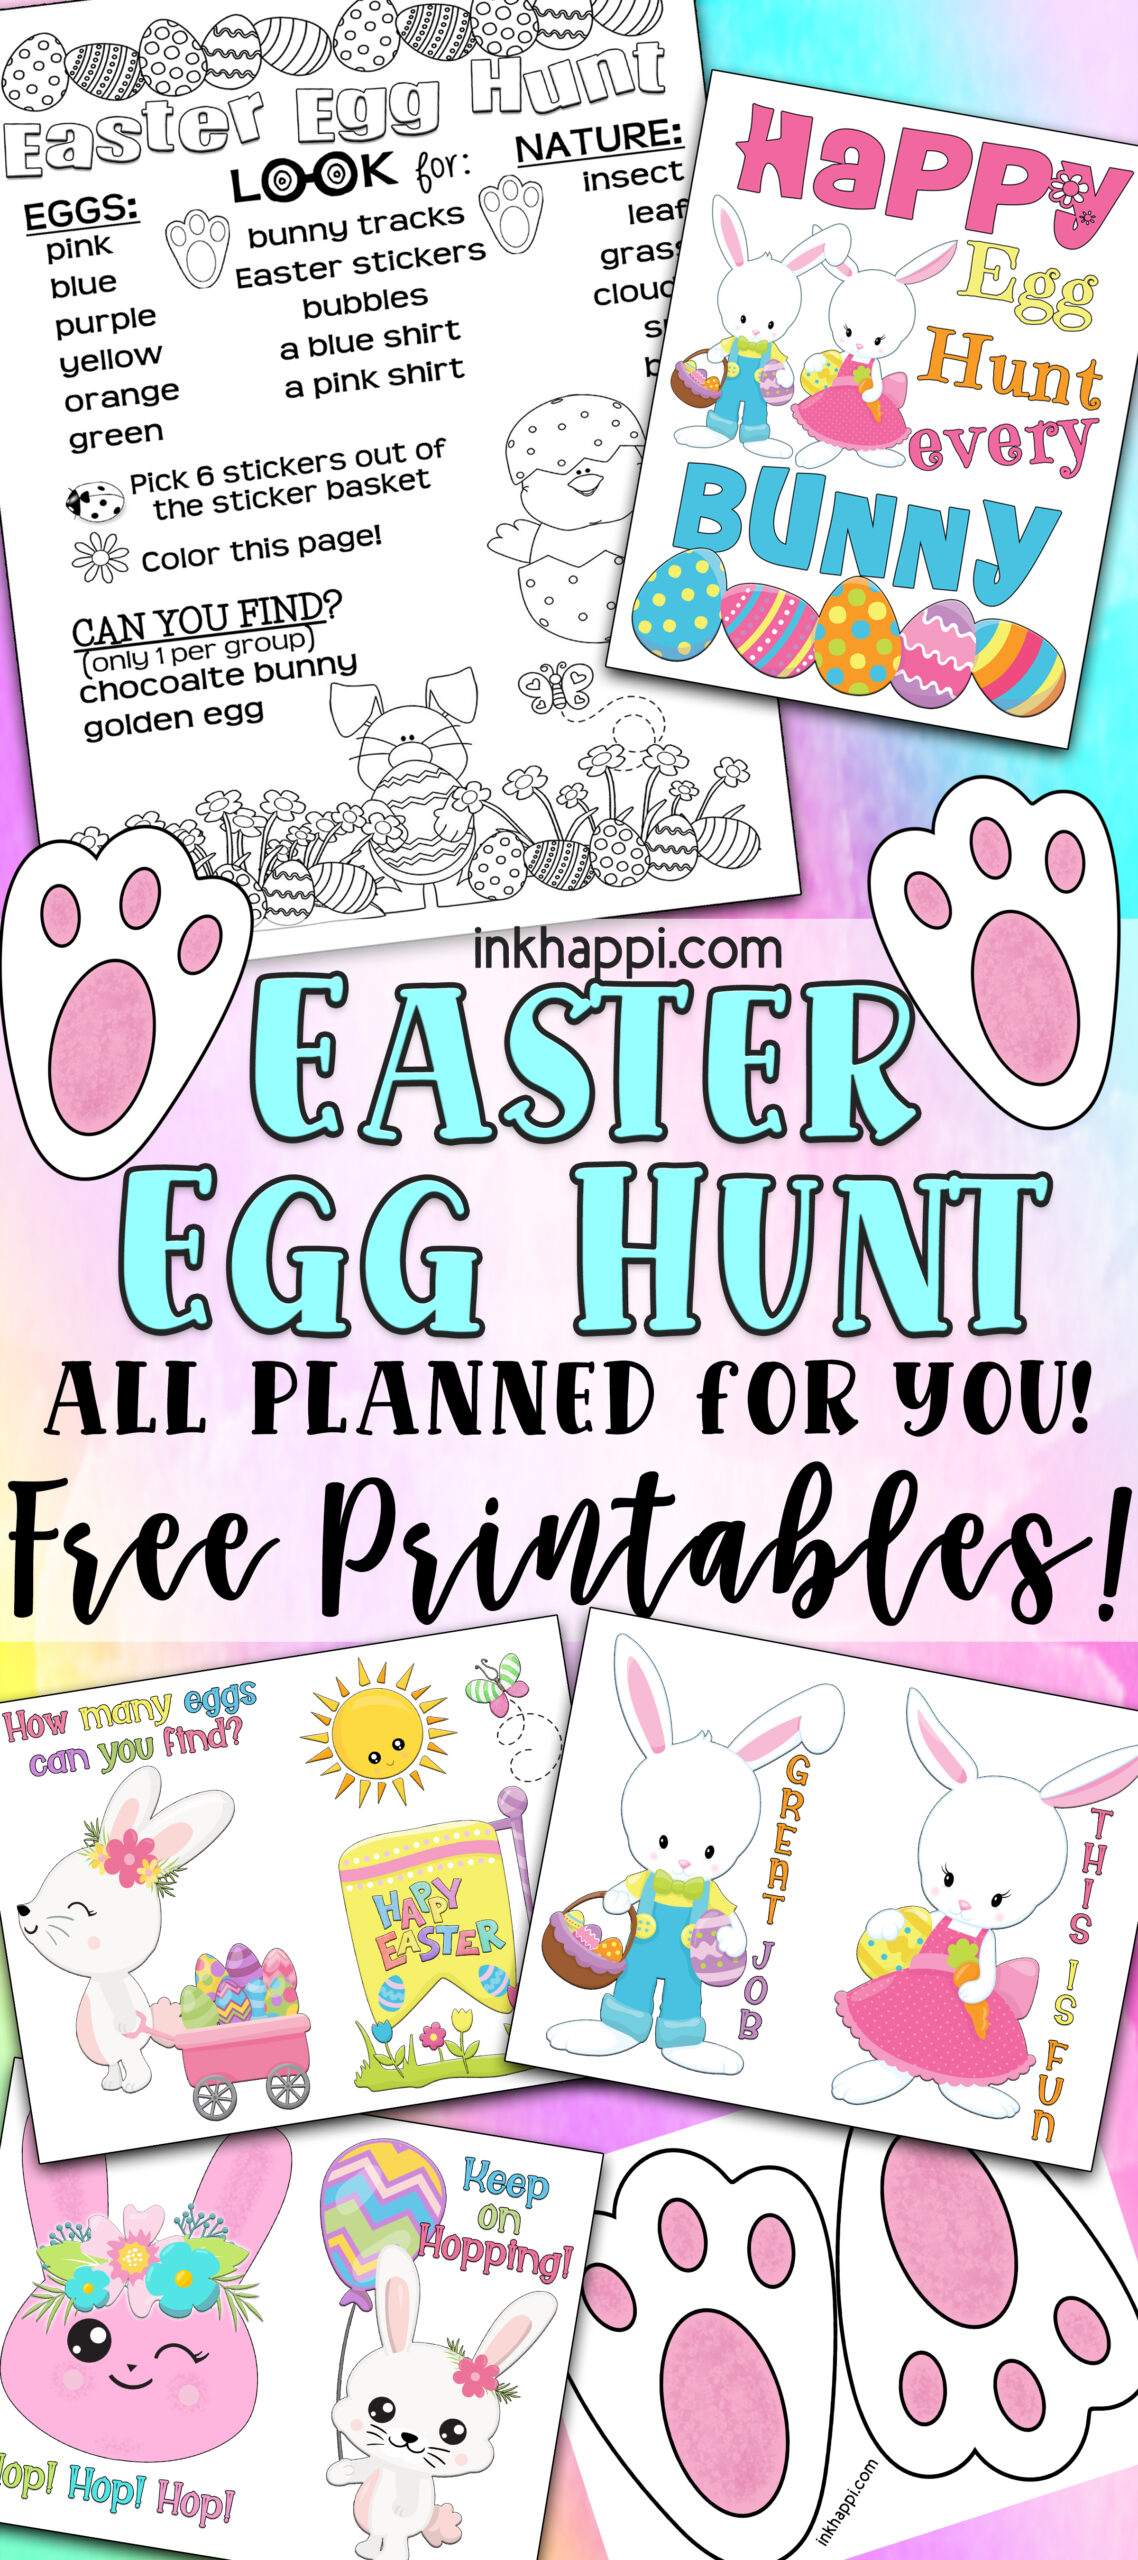 Easter Egg Hunt All Planned Out For You Plus Free